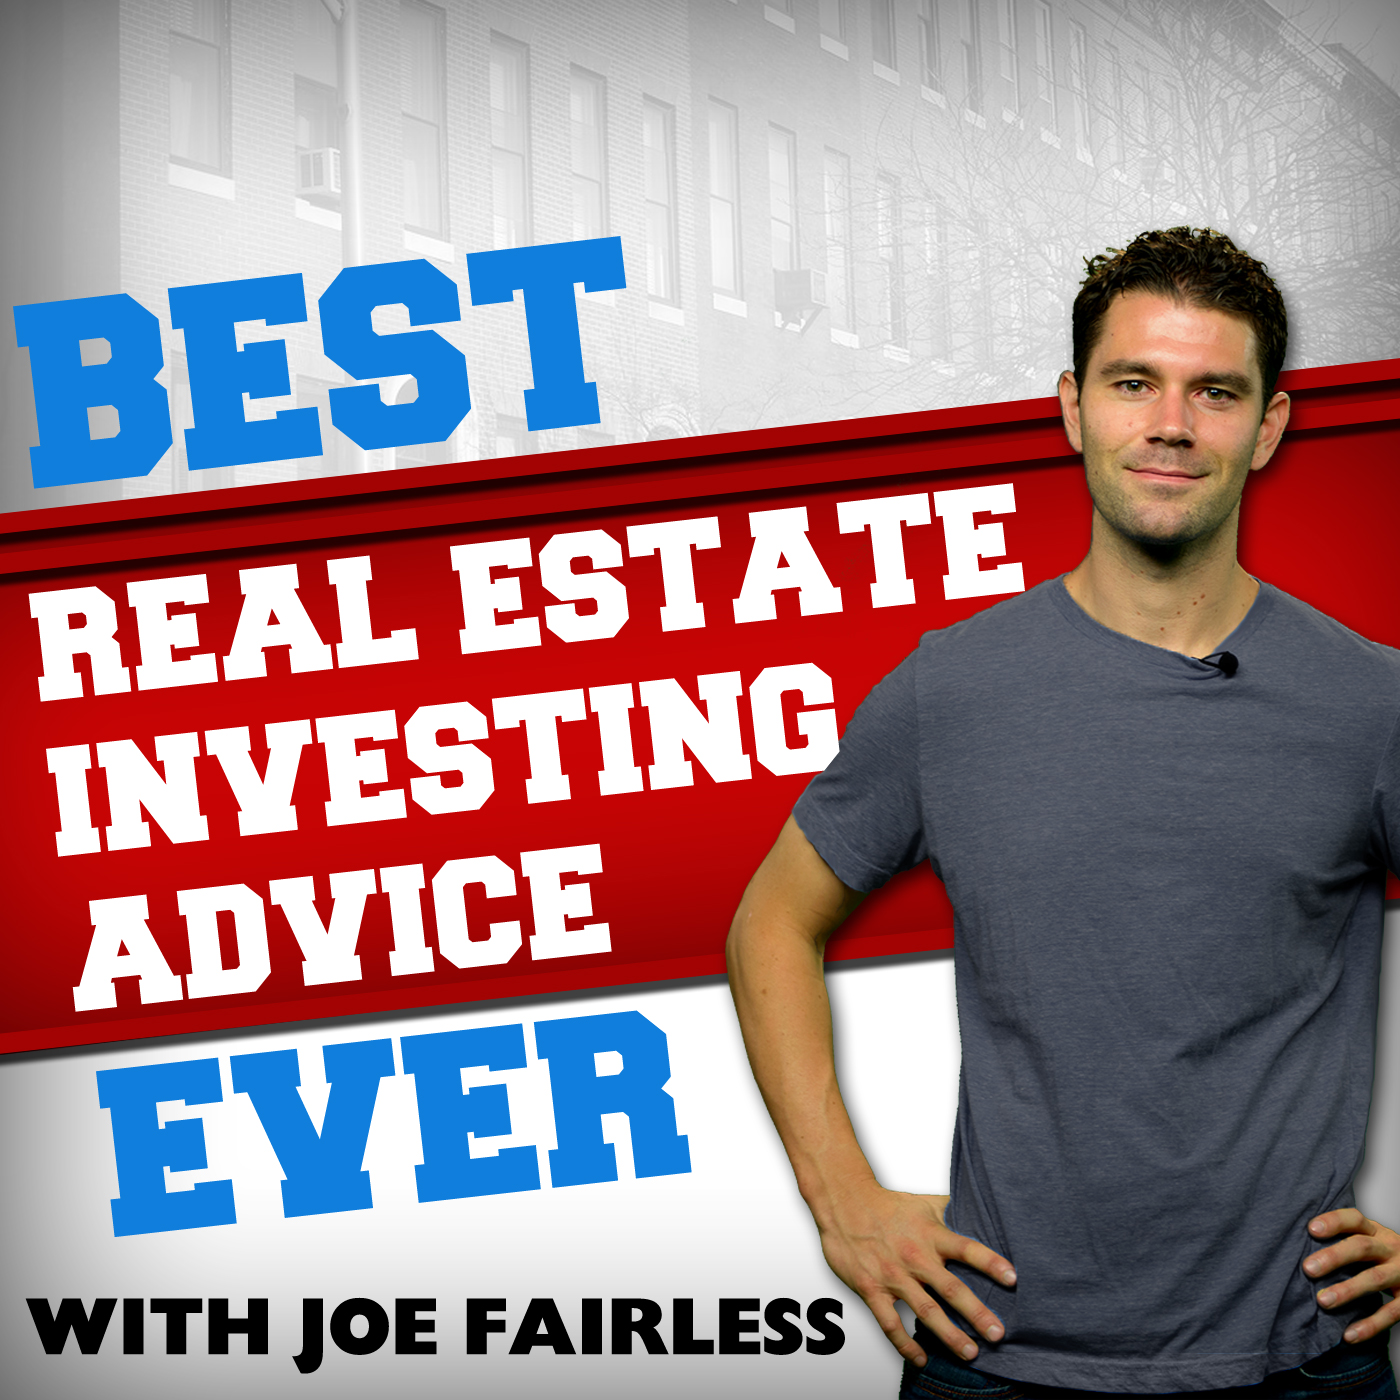 JF506: His Firm Buys in 22 Student/Multiunit MARKETS Nationwide!